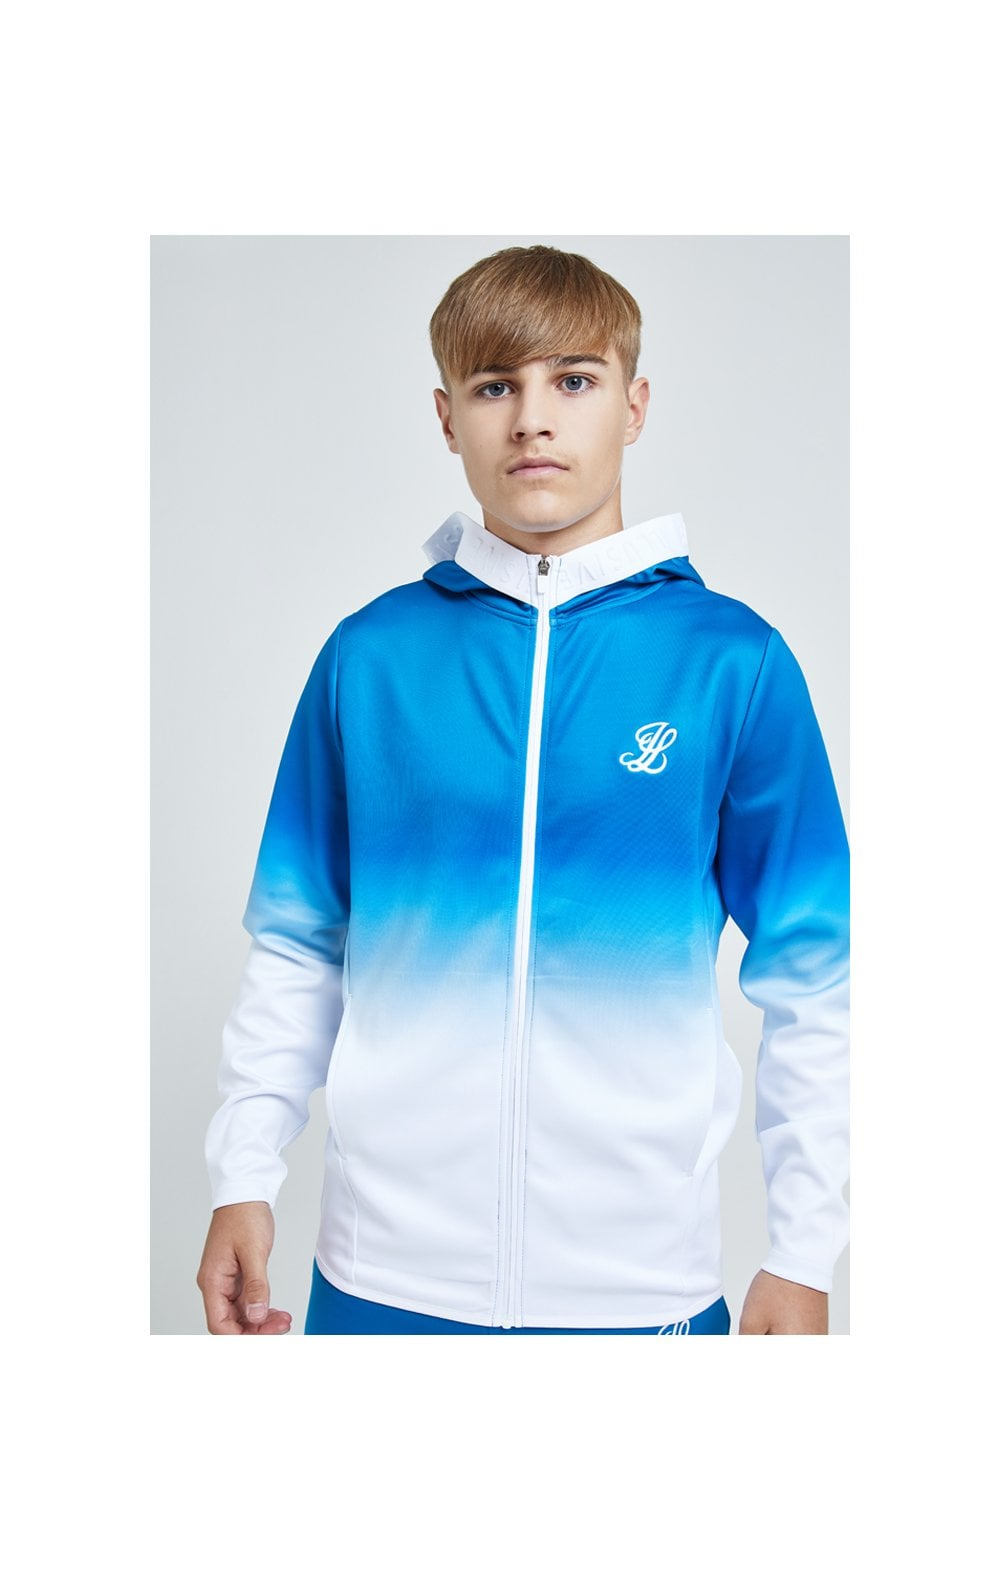 Load image into Gallery viewer, Illusive London Elevate Agility Zip Through Hoodie - Blue & White